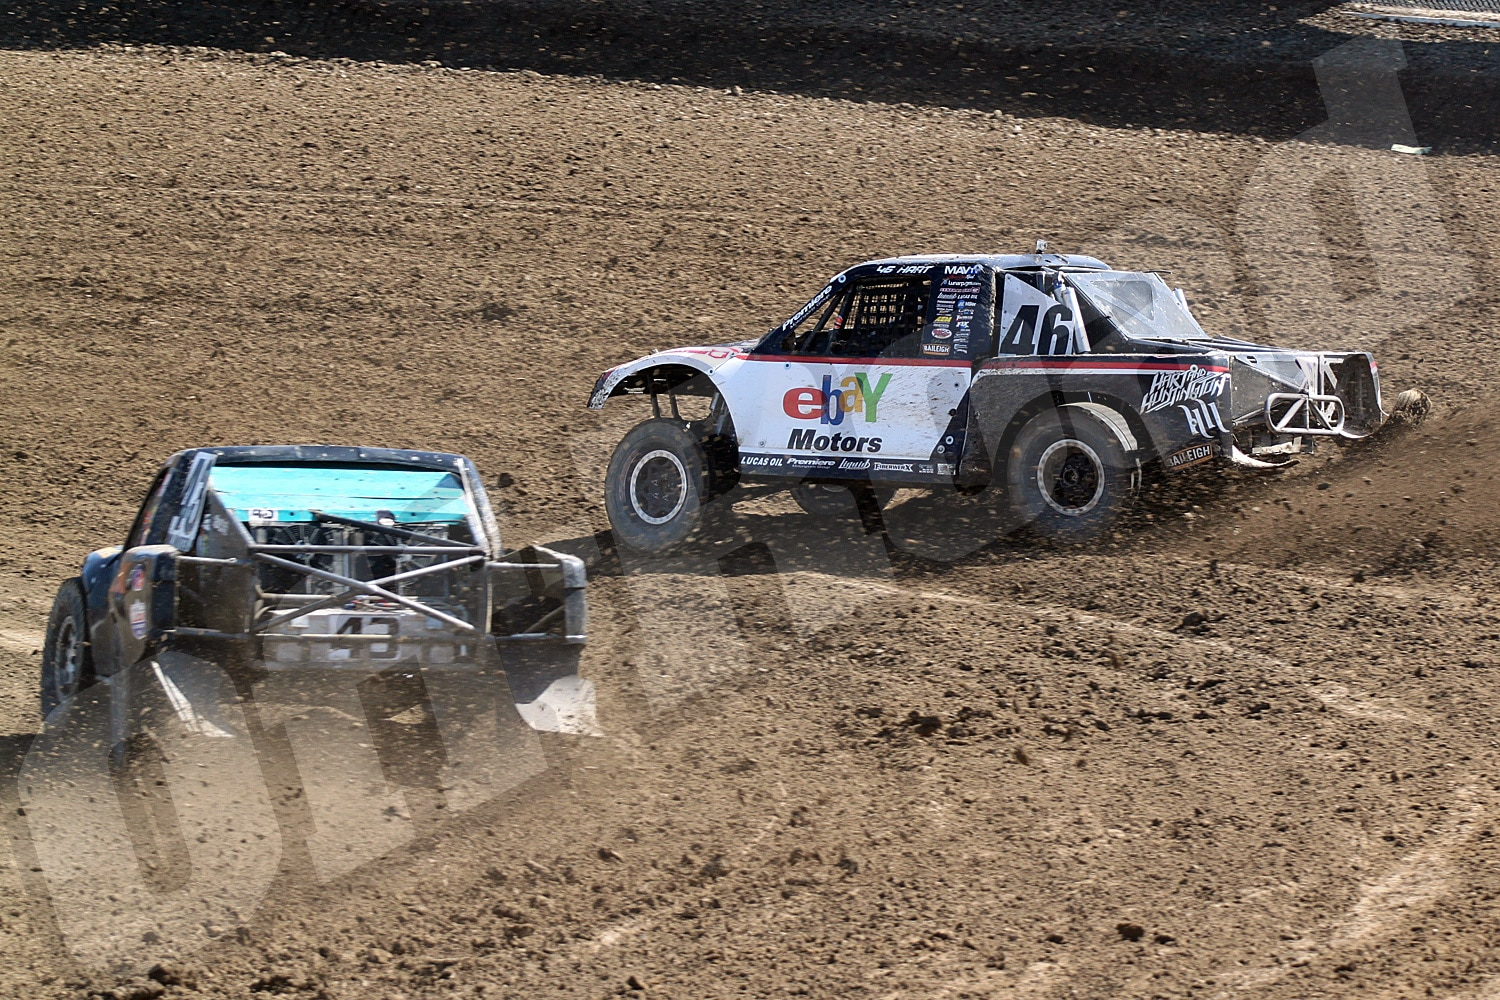 050312or 7574+2012 lucas oil off road racing series round 3+pro 4